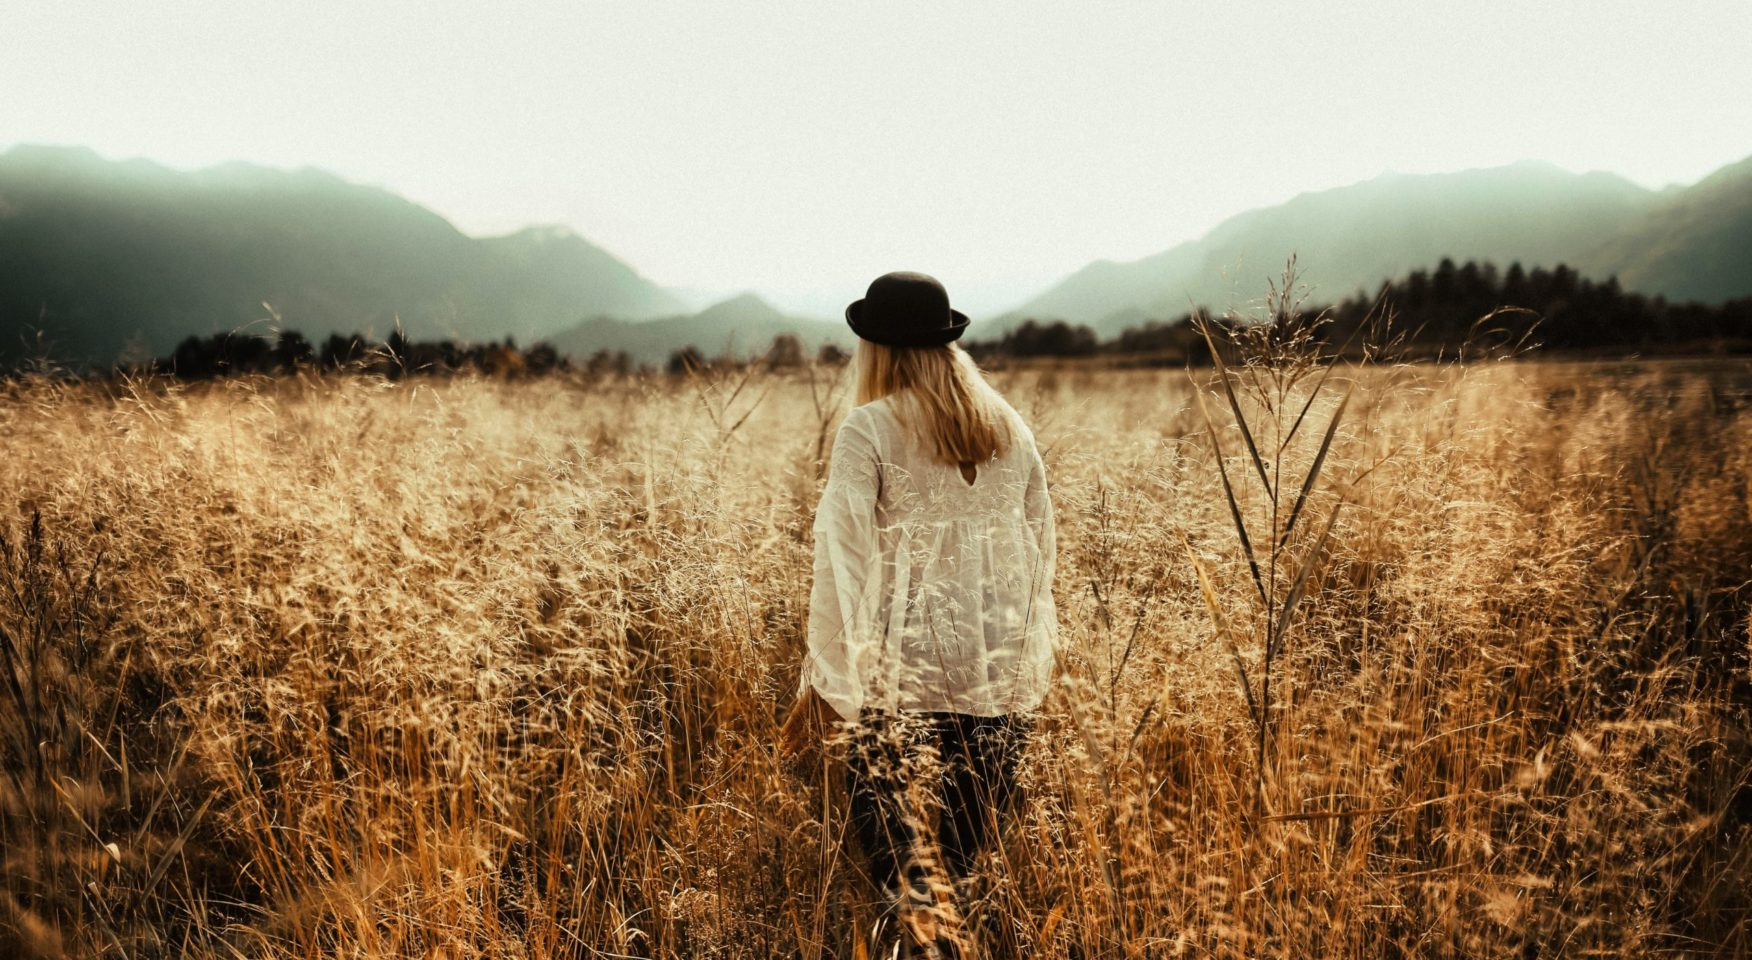 Woman wearing white lacy blouse and black hat walking through meadow of brown brush